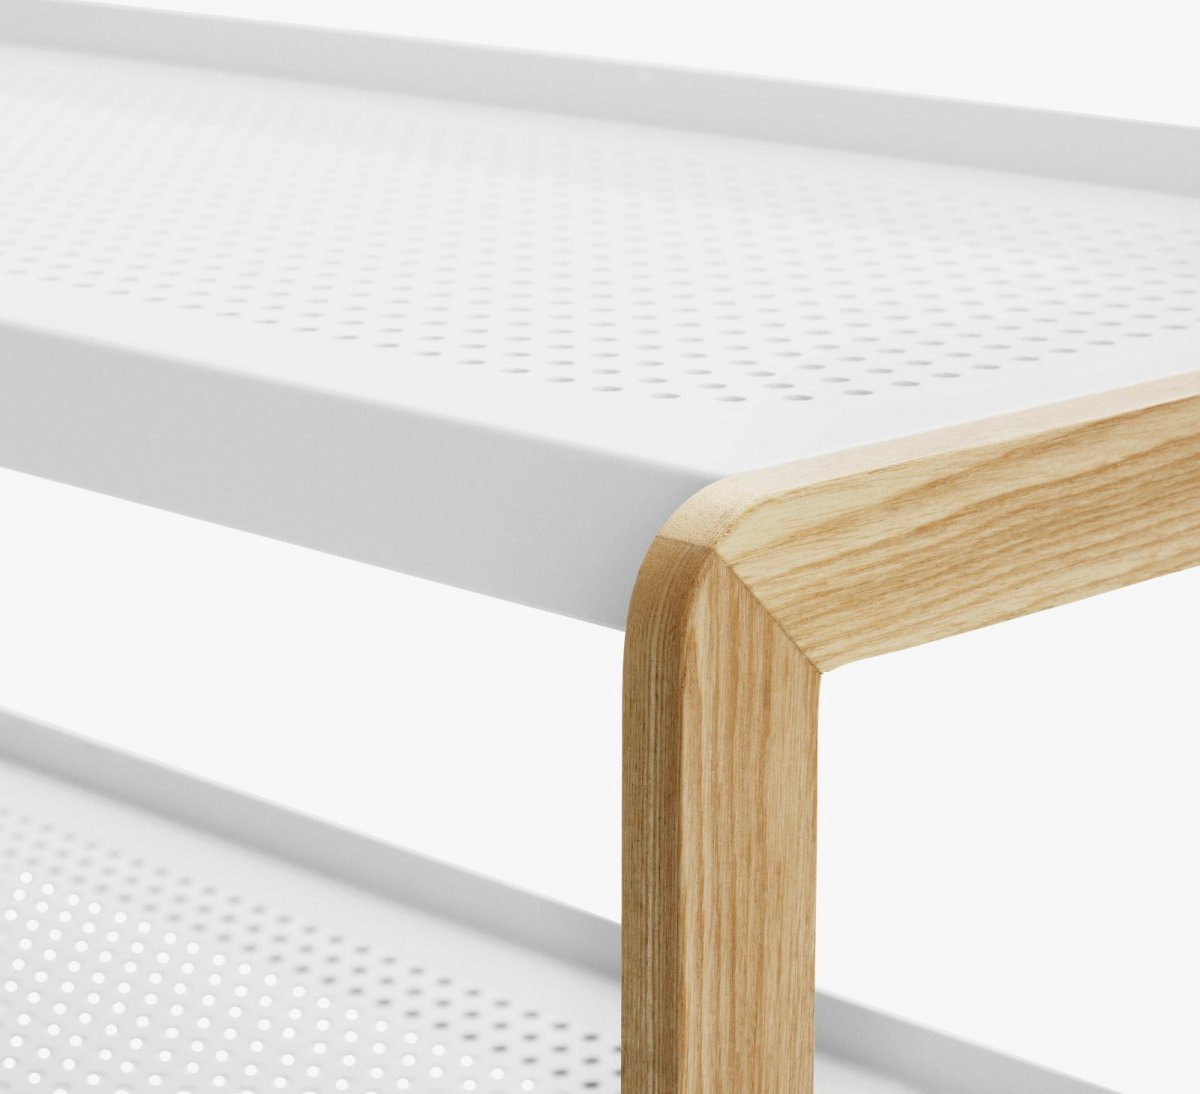 Sko Shoe Rack in white, detail.